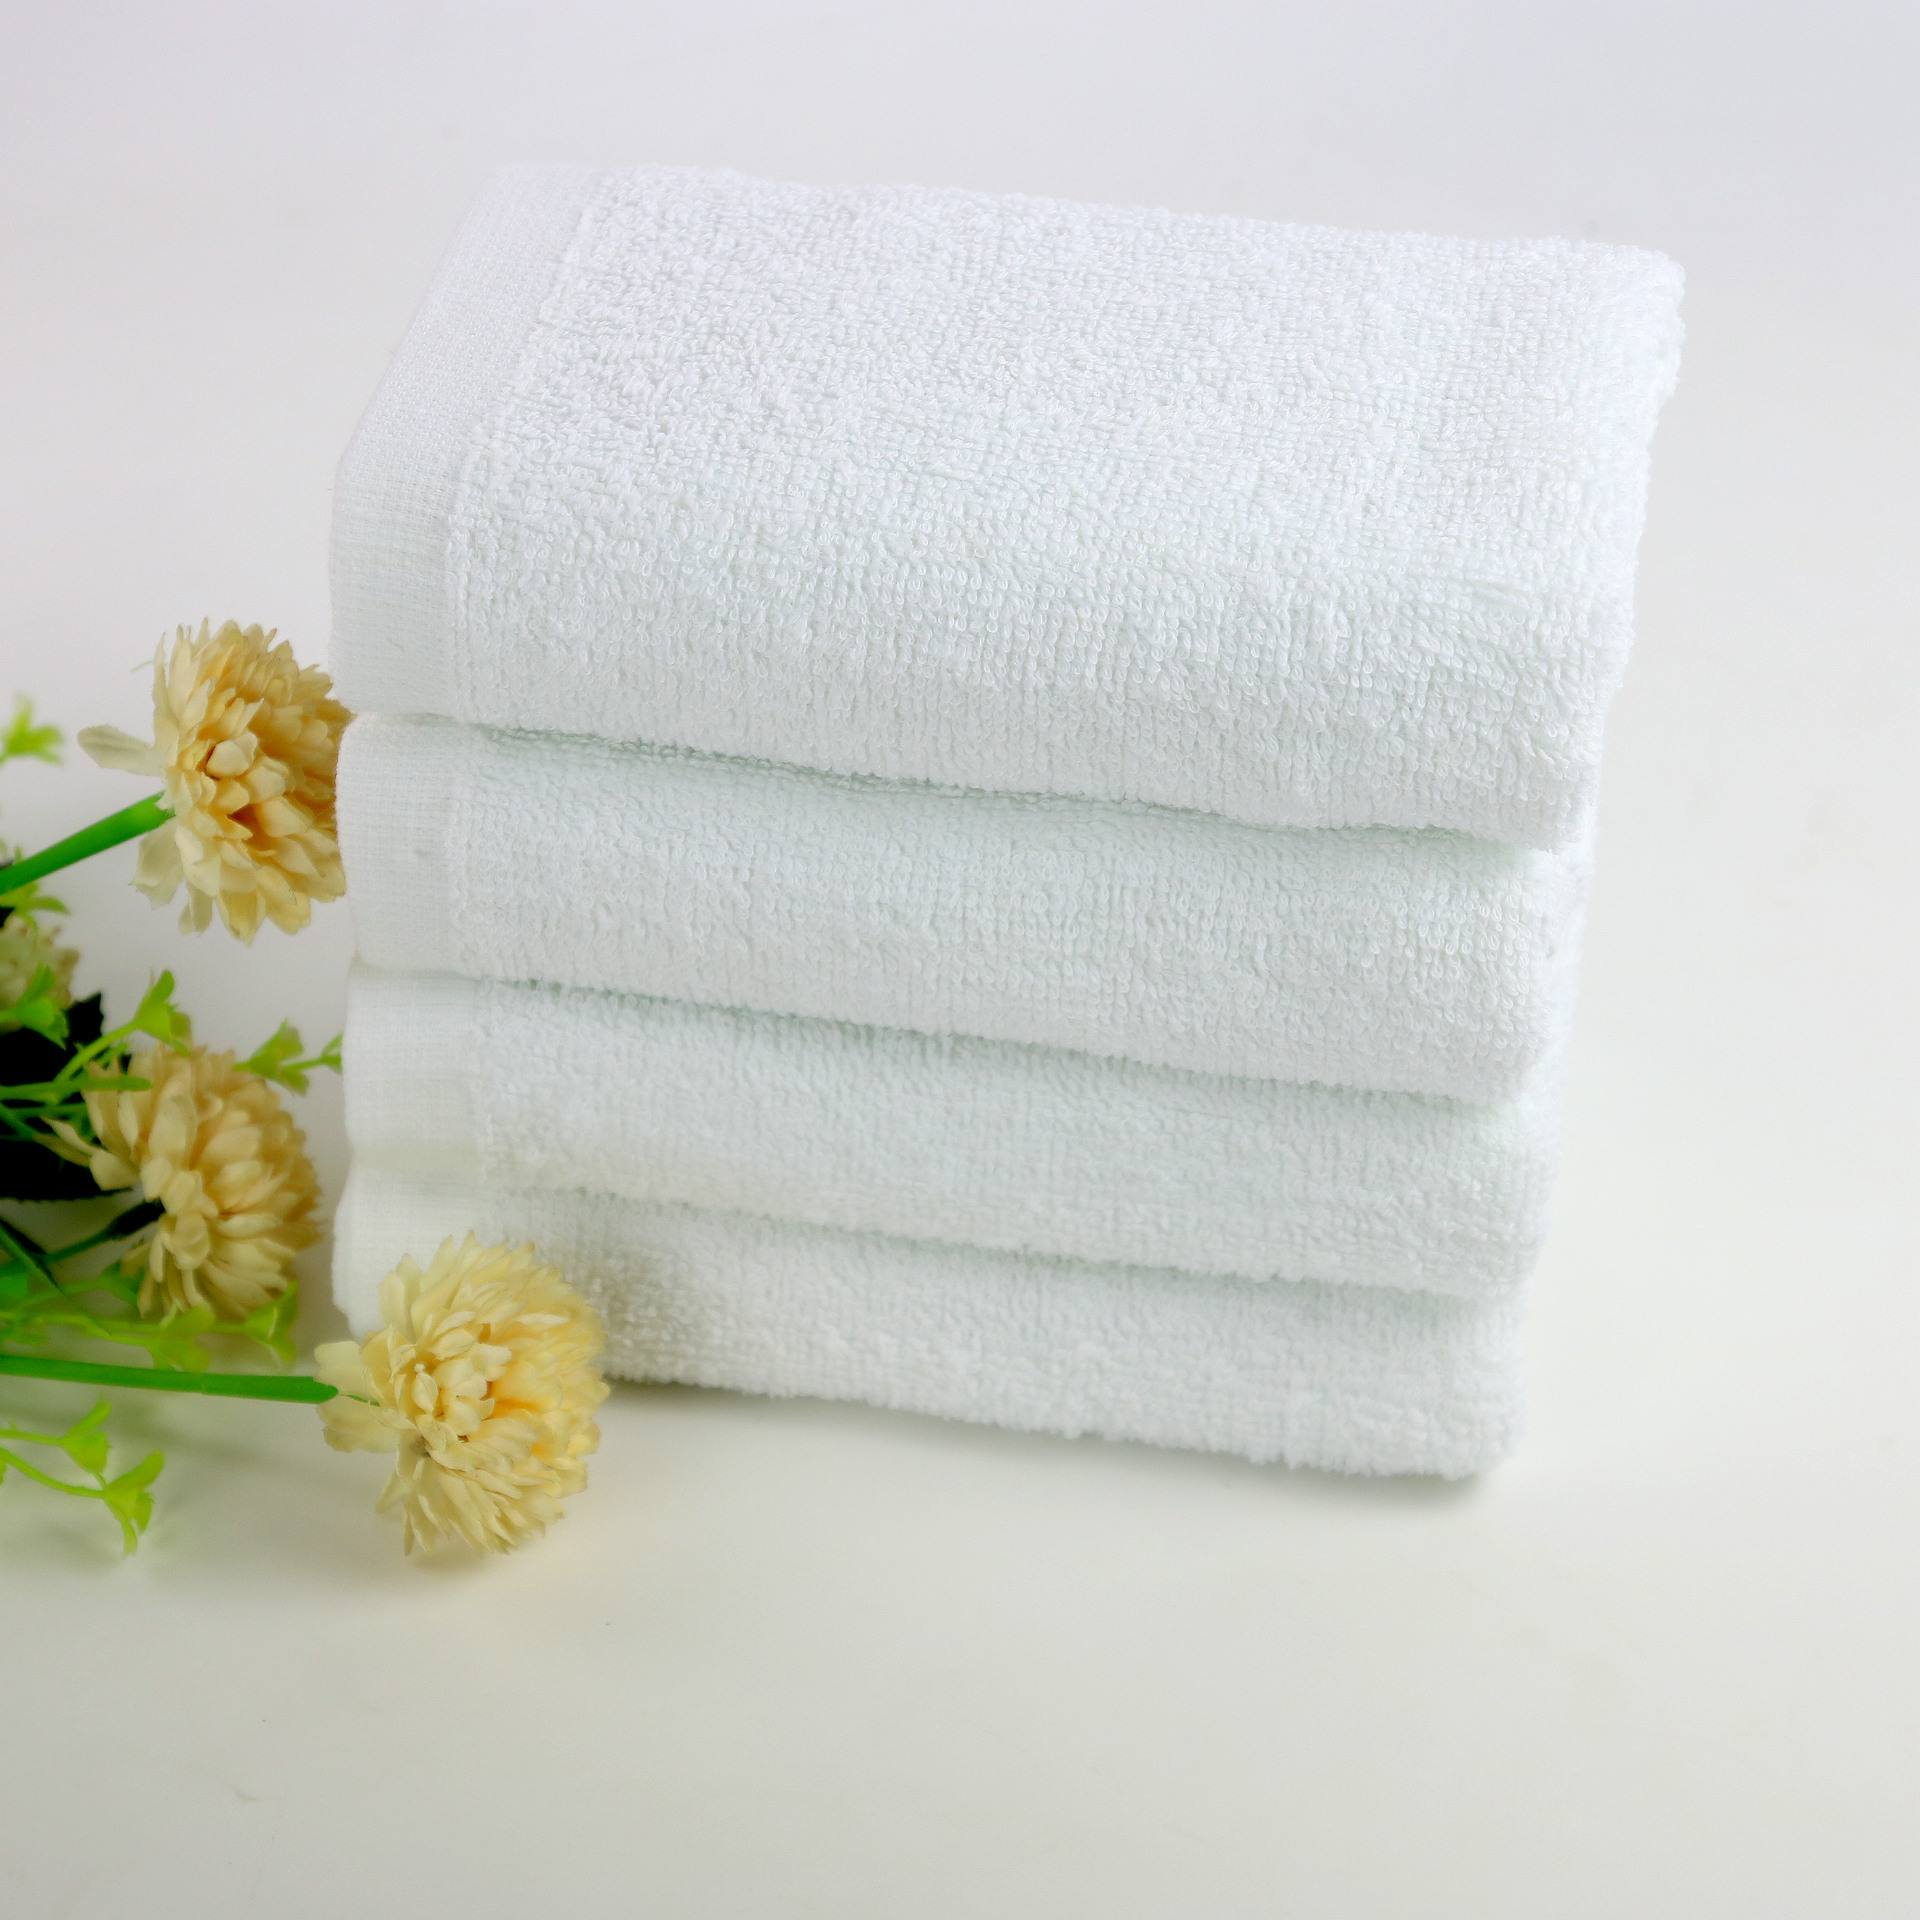 Why Choose Cotton Towels?